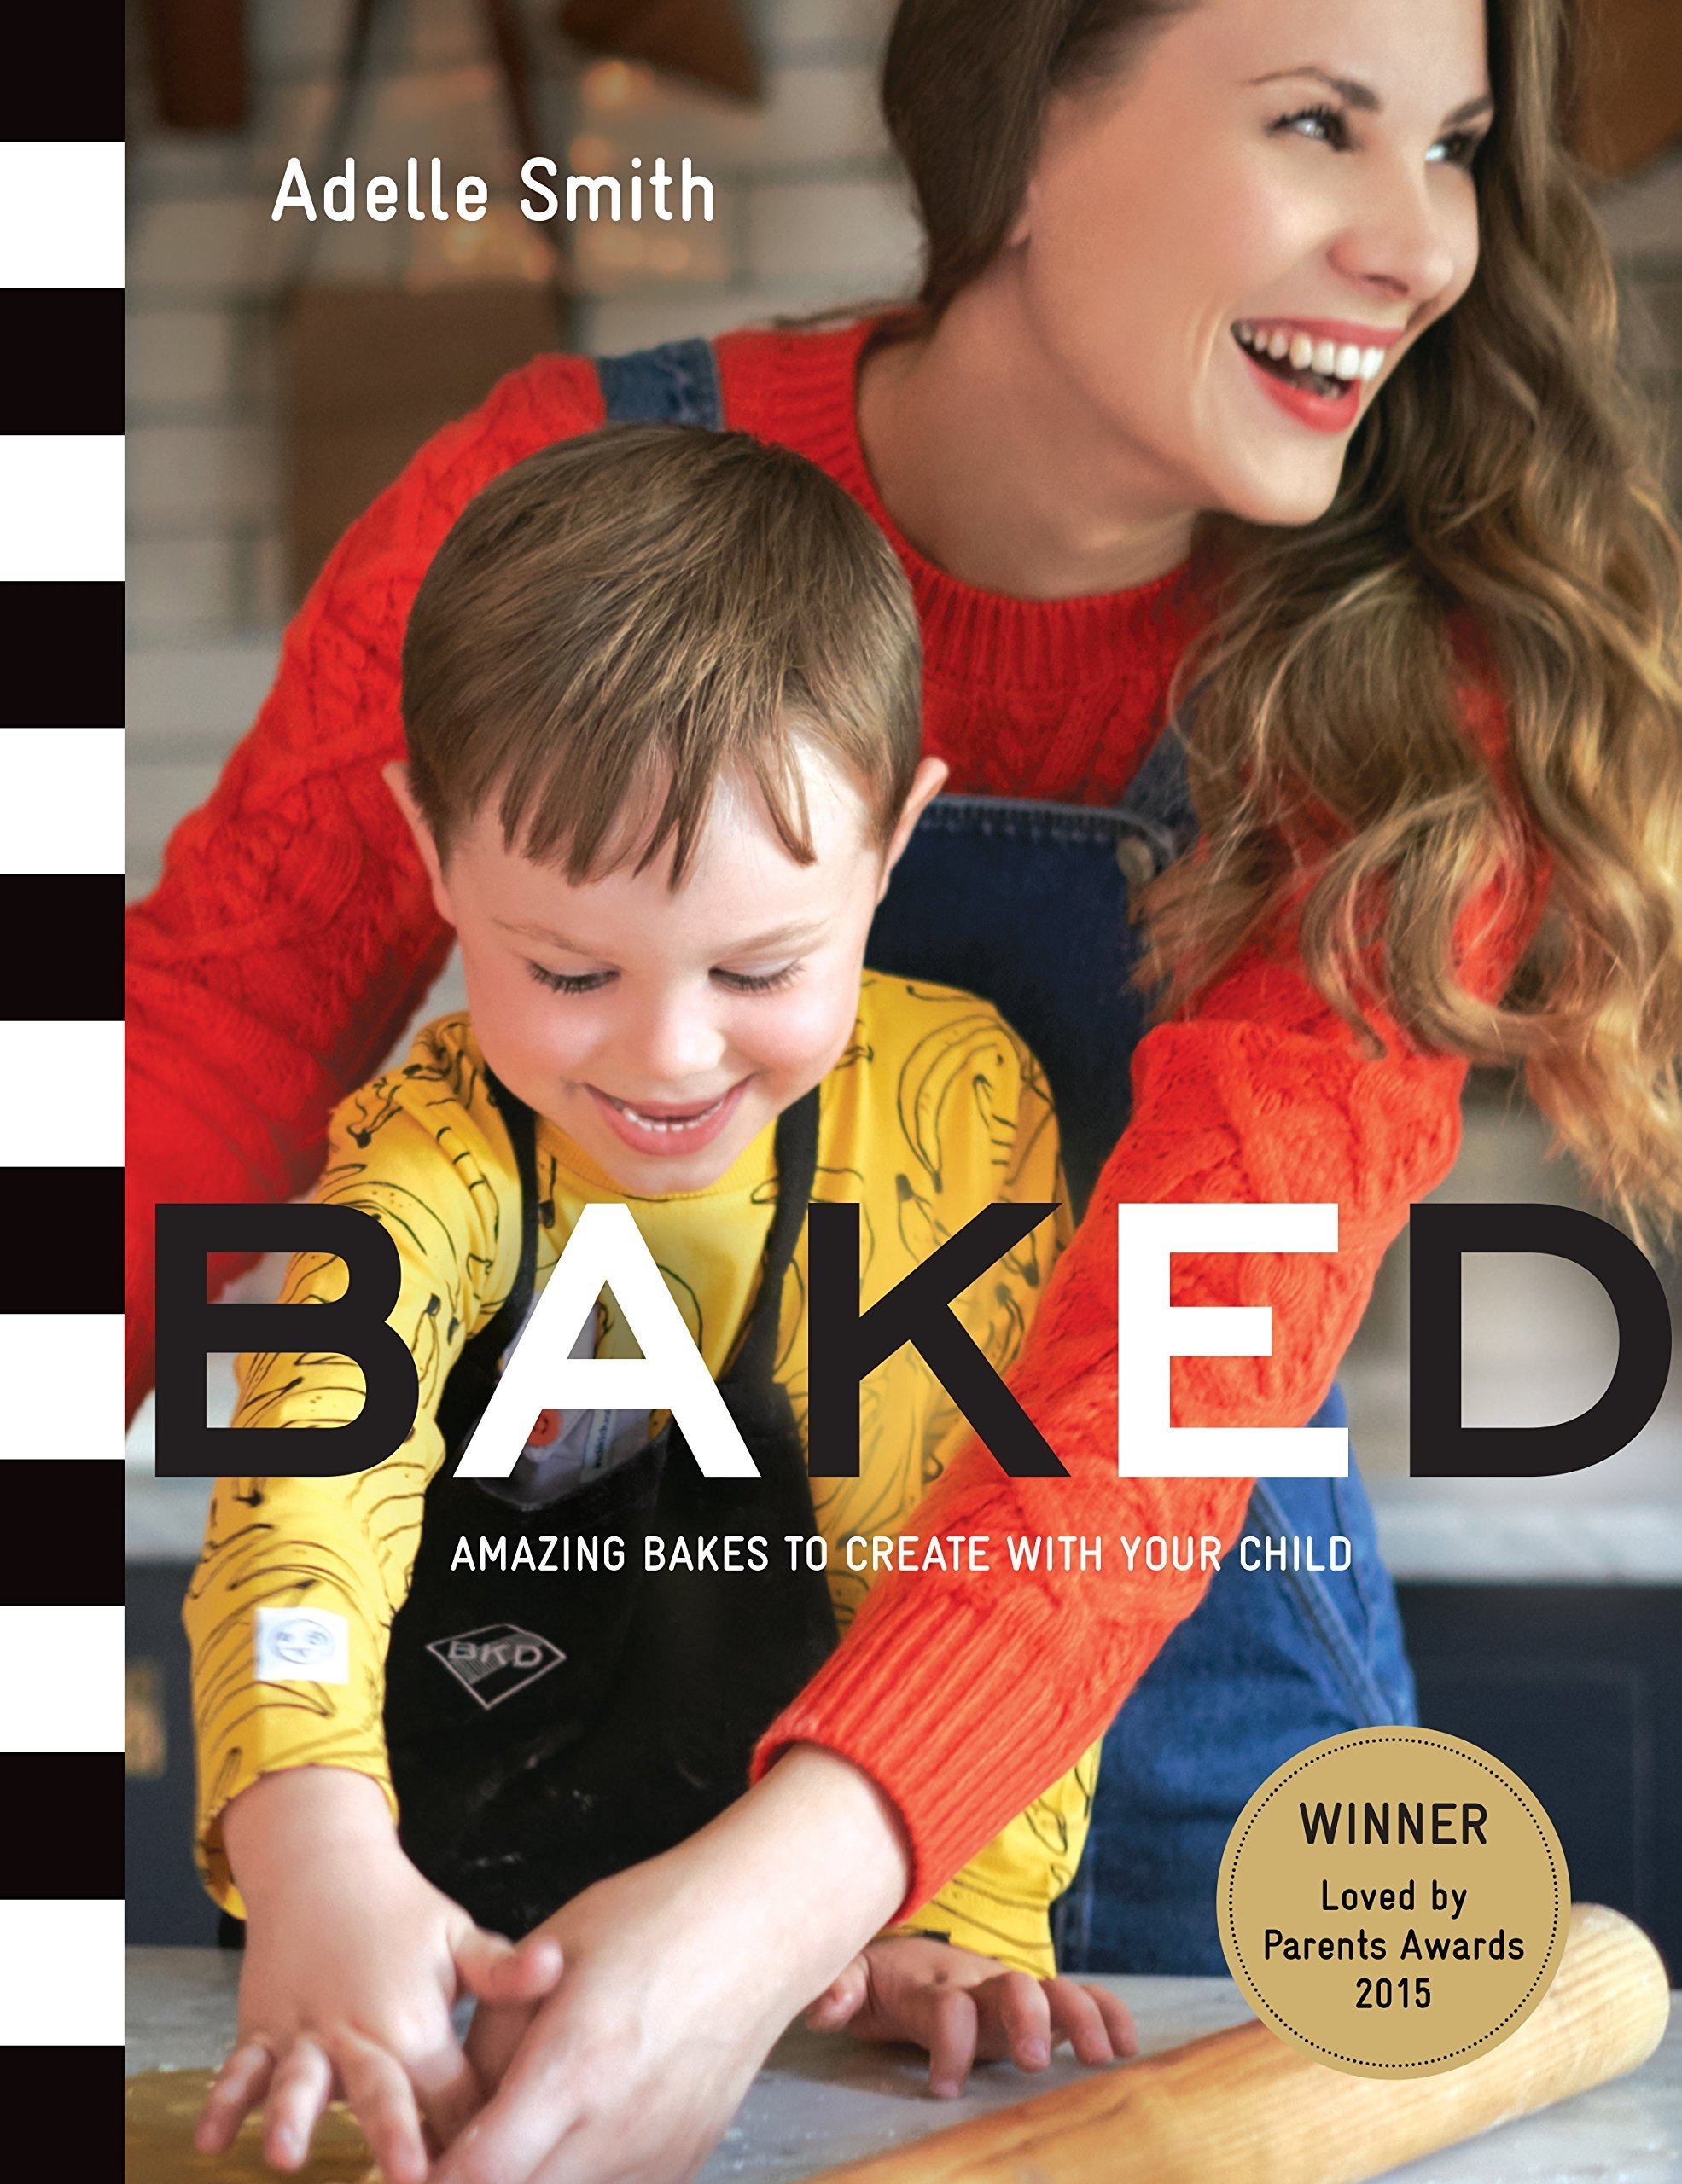 Adelle Smith BKD Baked Baking Book